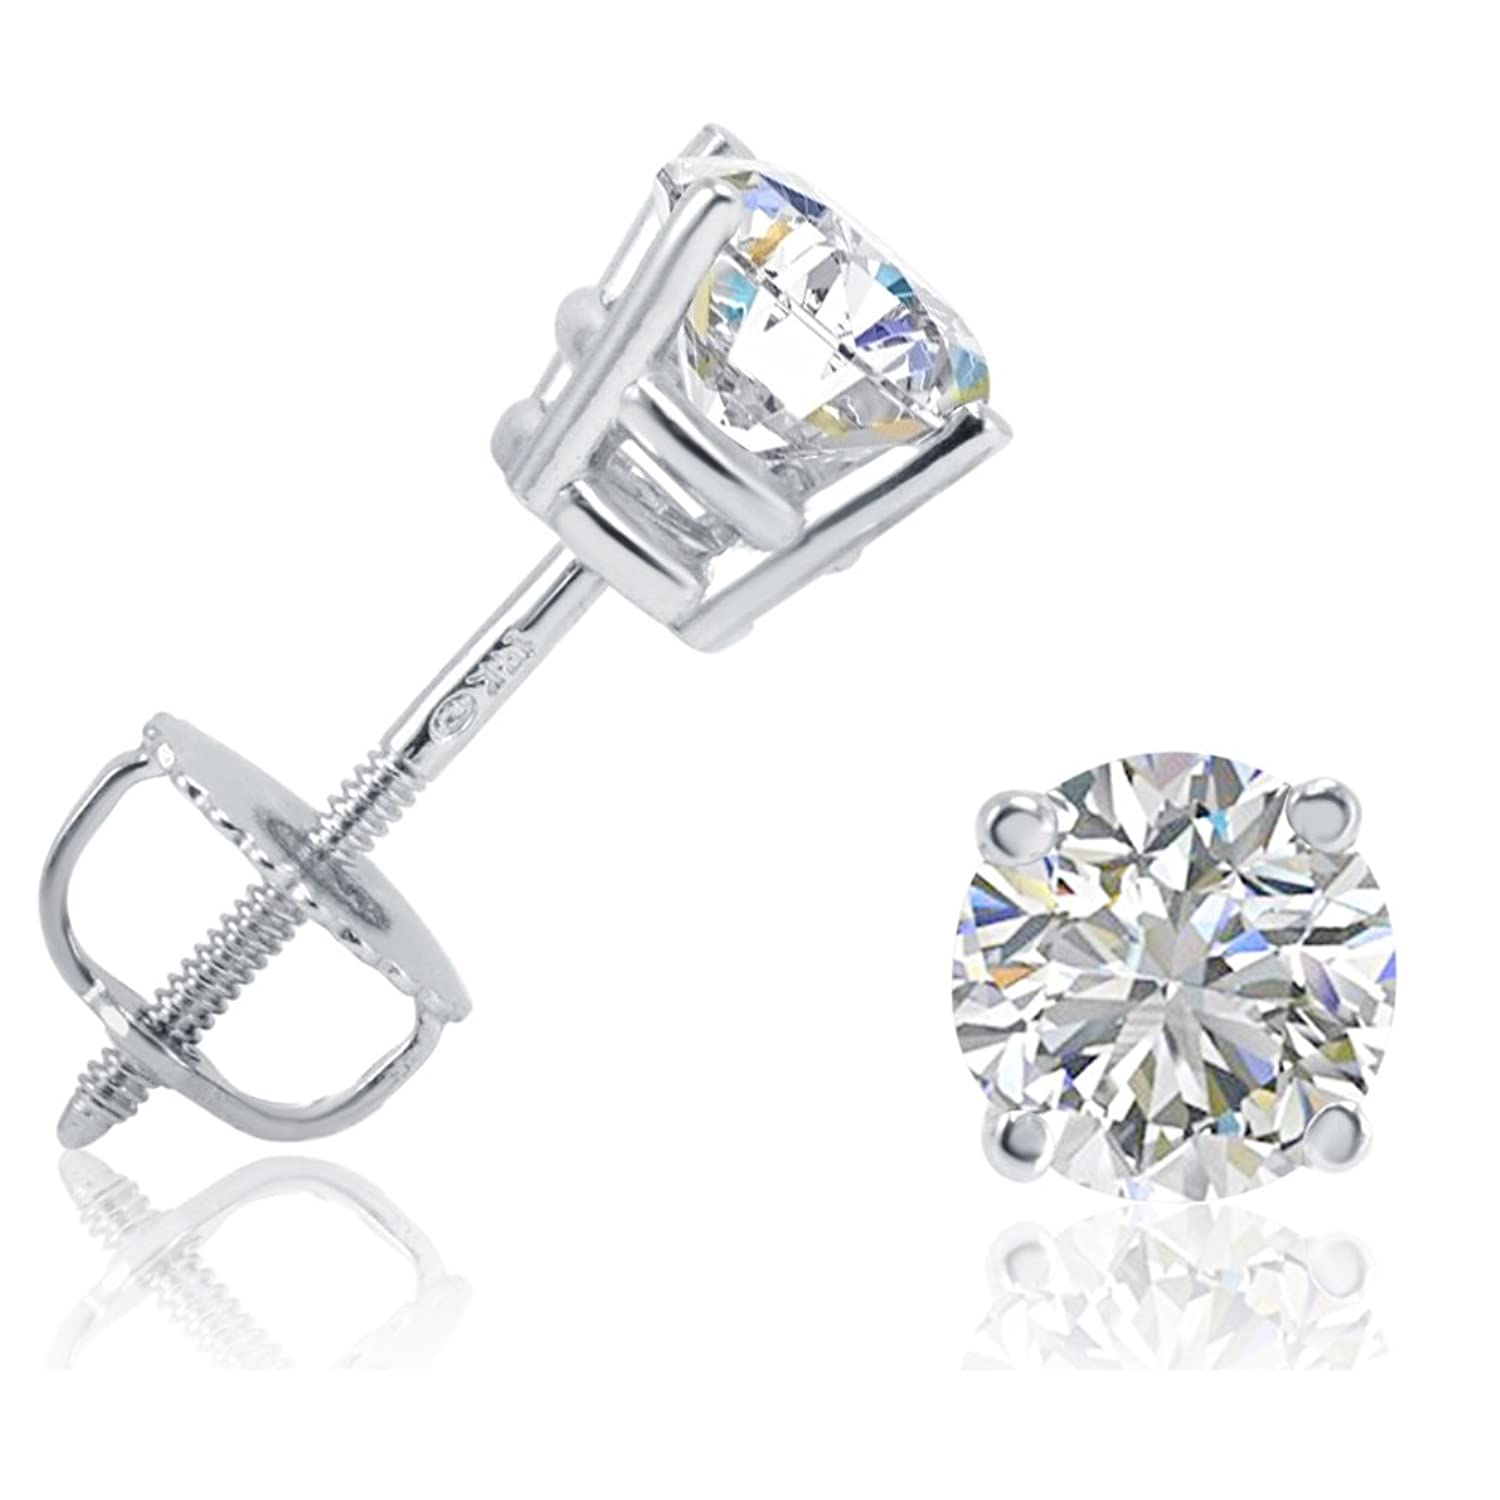 diamond gold shop princess arrivals screw squarecut new white square back cut earrings stud